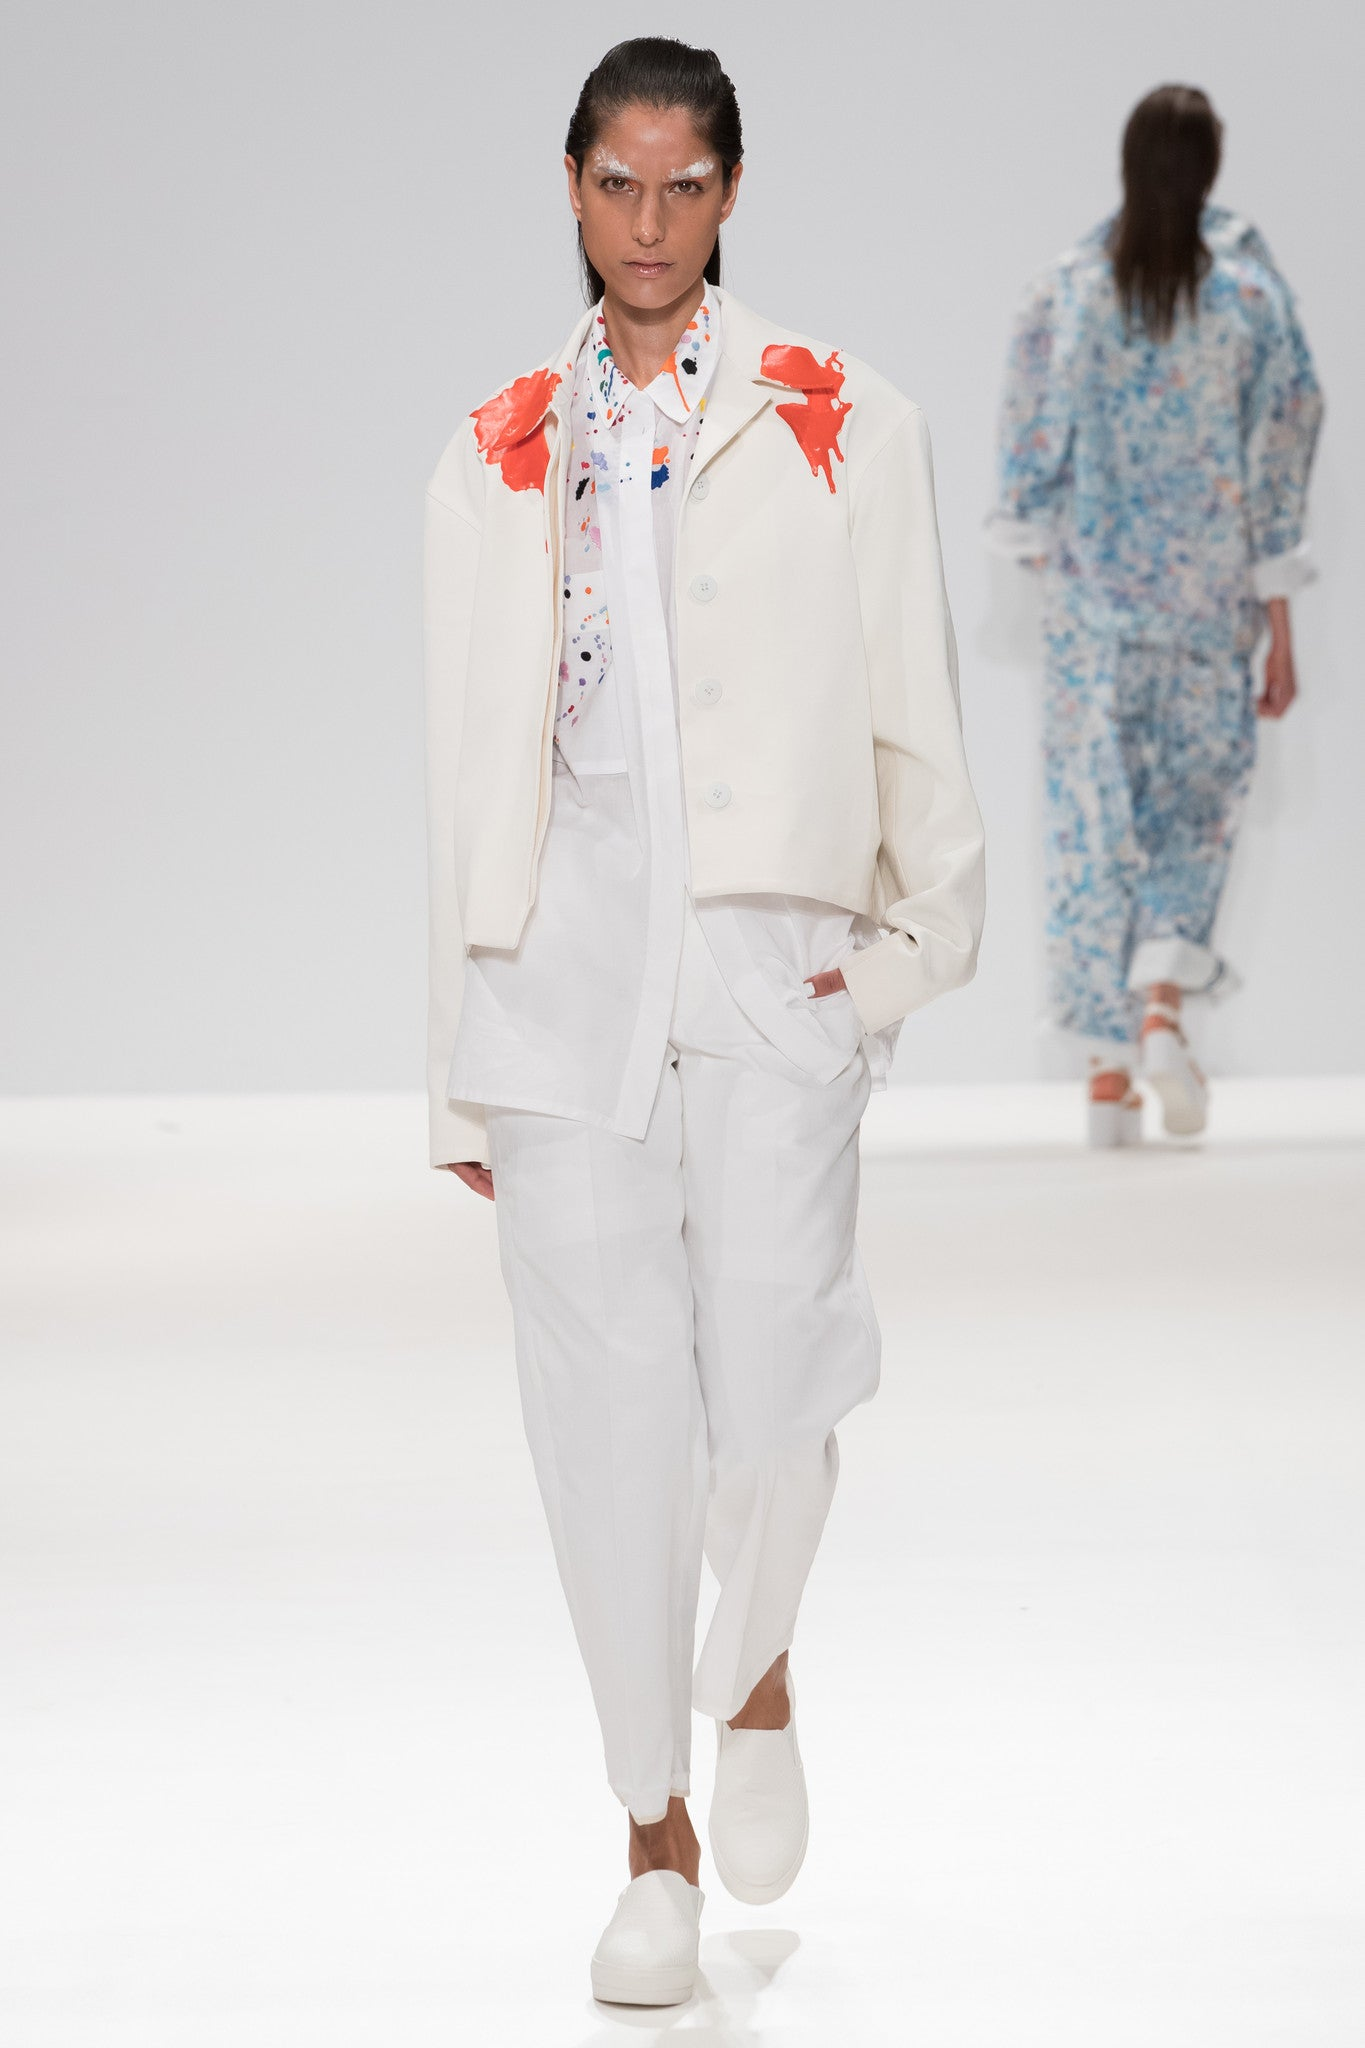 "SS17 catwalk image from CIMONE'S show, showing colourful embroidered paint splashes on crisp white cotton 'cleave' shirt from emerging brand CIMONE. Embellishments and overall look at echoed by Oscar de la Renta one year later in SS18 - be ahead of the trends and support new brands! Worn with an orange rubberised paint drip collar version of out white cropped bomber - ""flight jacket"""